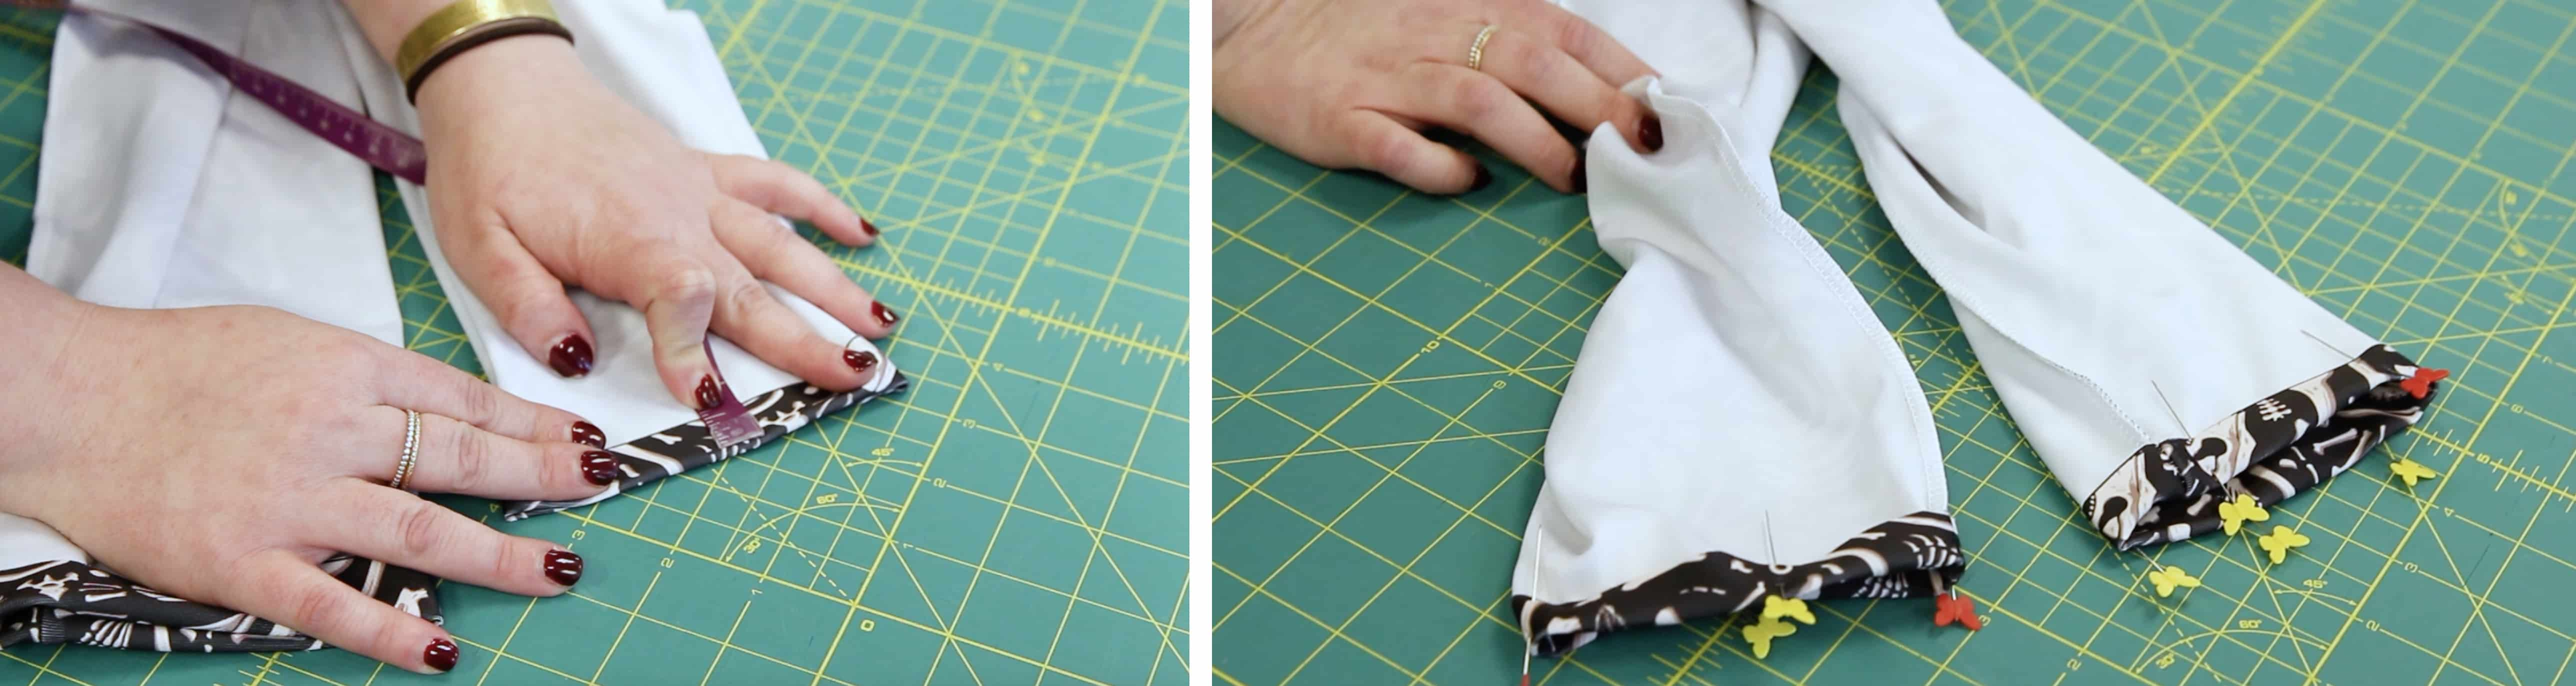 "Folding up the leggings 1/2"" and pinning in place 